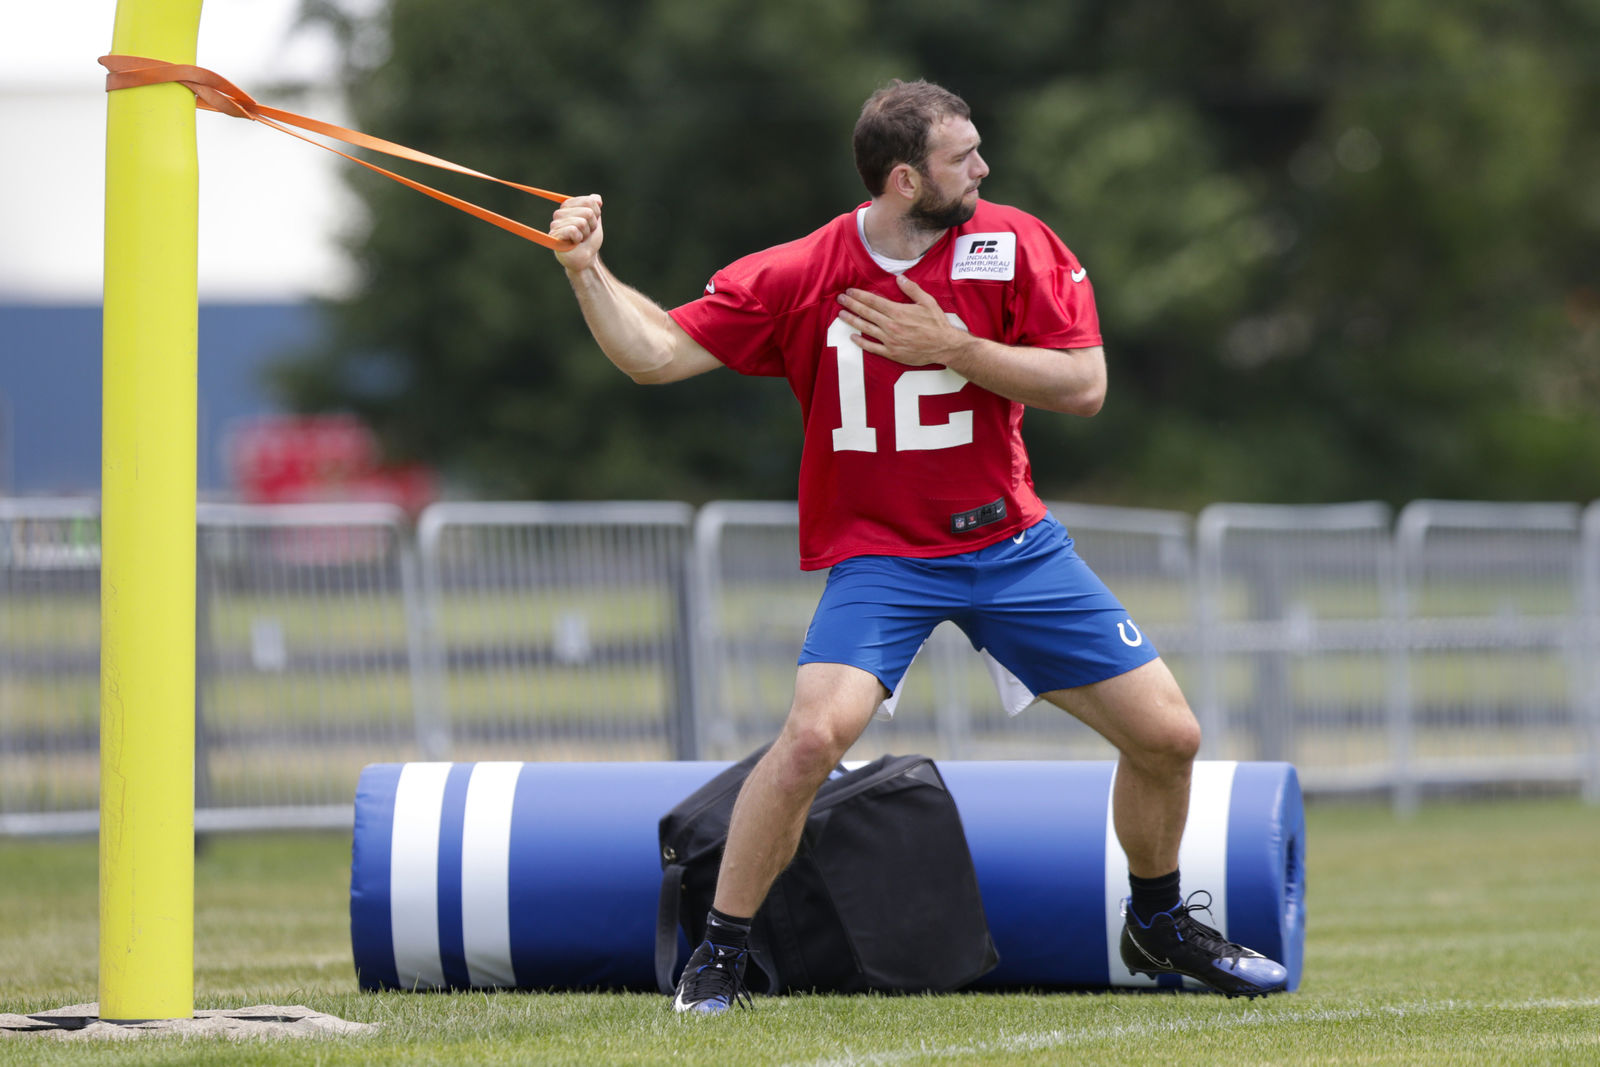 "FILE - In this July 26, 2019, file photo, Indianapolis Colts quarterback Andrew Luck warms up during practice at the NFL team's football training camp in Westfield, Ind. If Luck keeps progressing, then the questions will turn into how soon can he play? ""We won't as an organization, put any player out there that can't perform at a high level,"" general manager Chris Ballard said. ""I'm not going to put players at risk. So if we feel comfortable, Frank and I and our staff feel comfortable that he can play, then he'll play."" (AP Photo/Michael Conroy, File)"